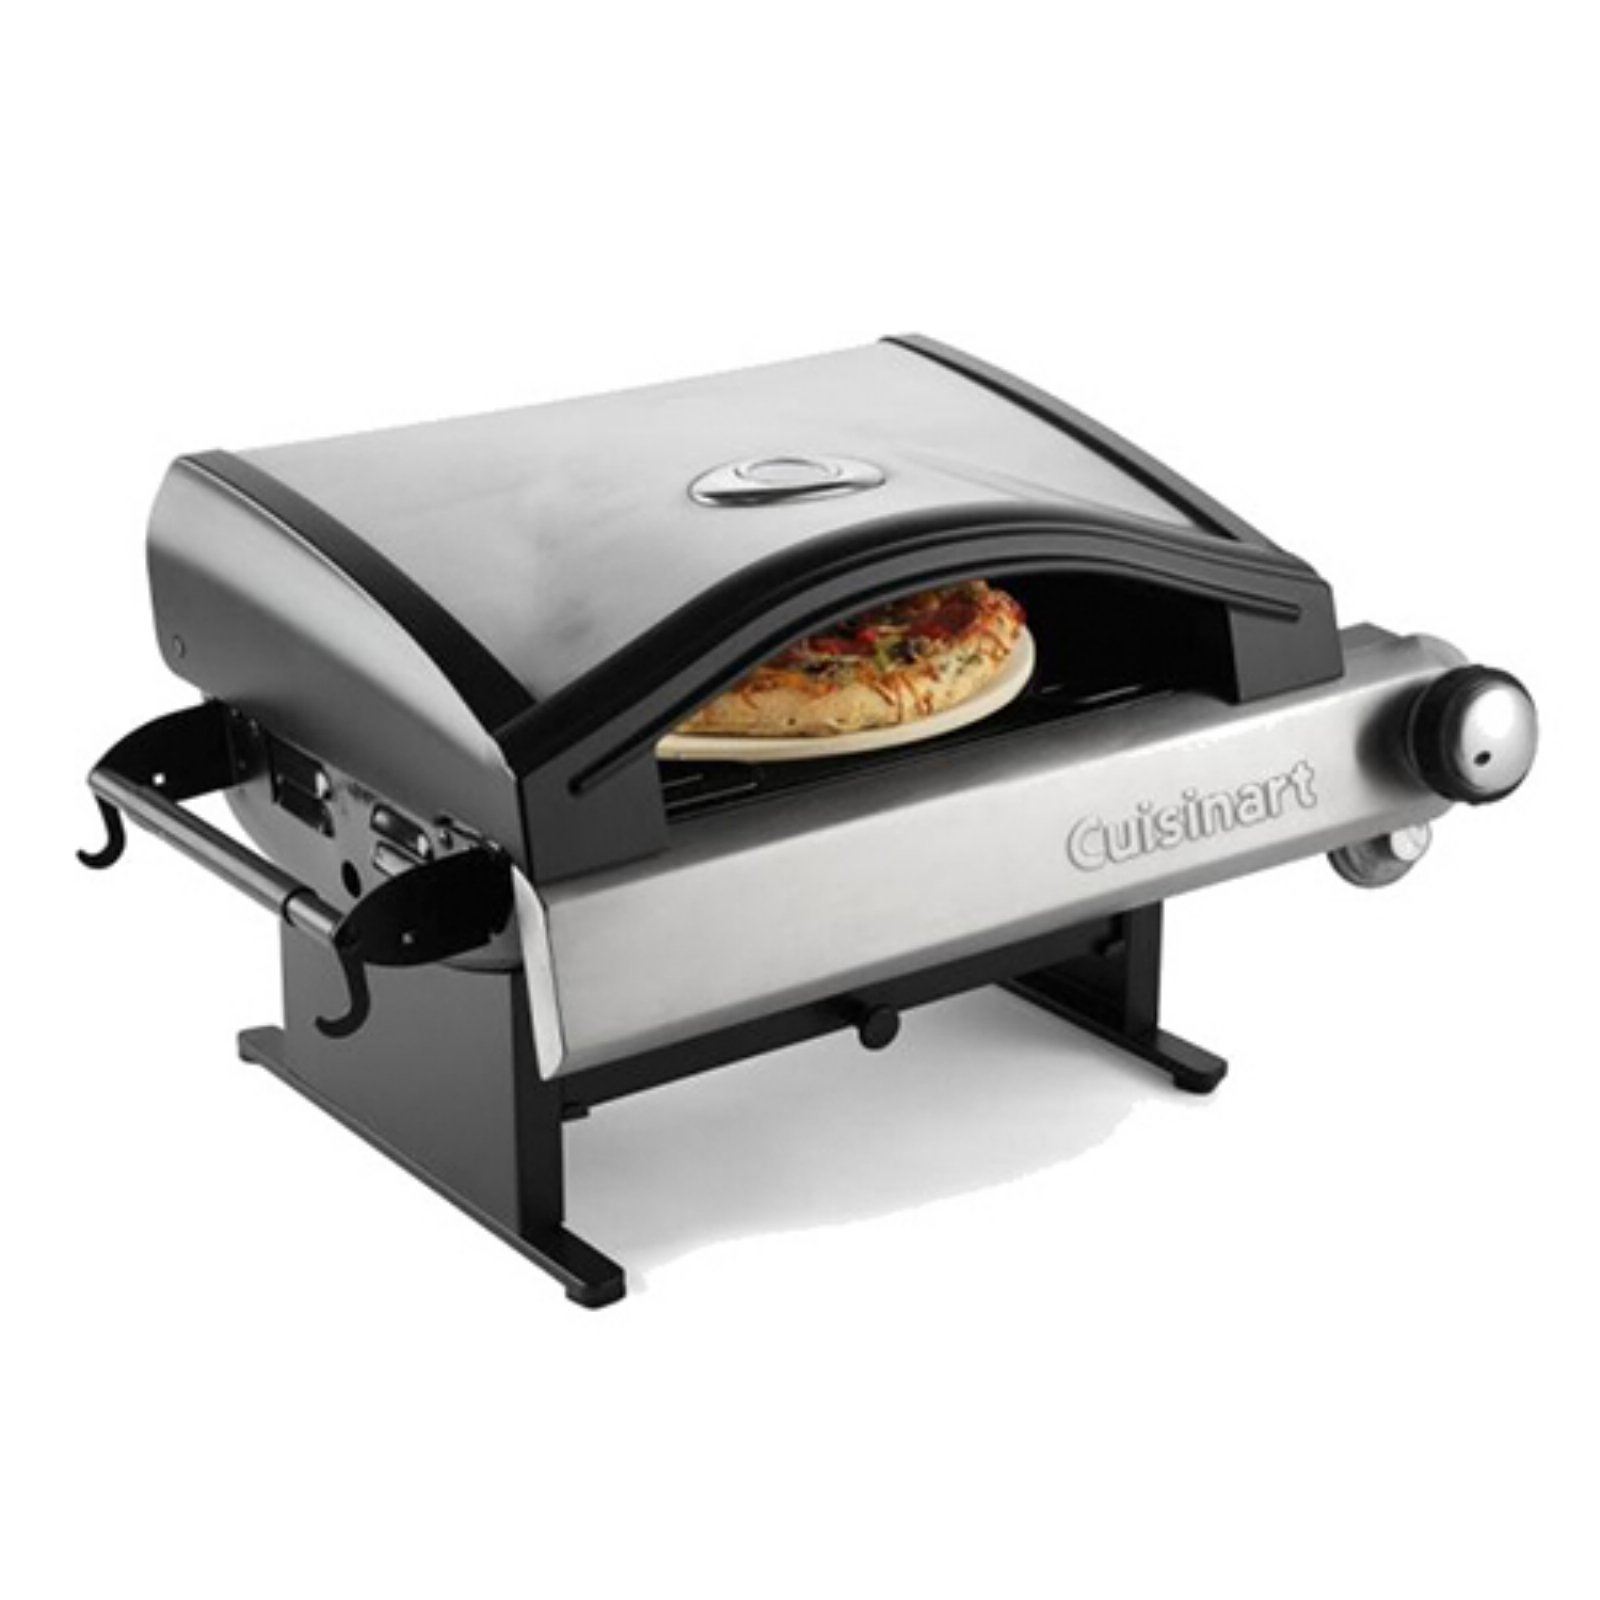 Cuisinart Alfrescamore Outdoor Pizza Oven with Accessories